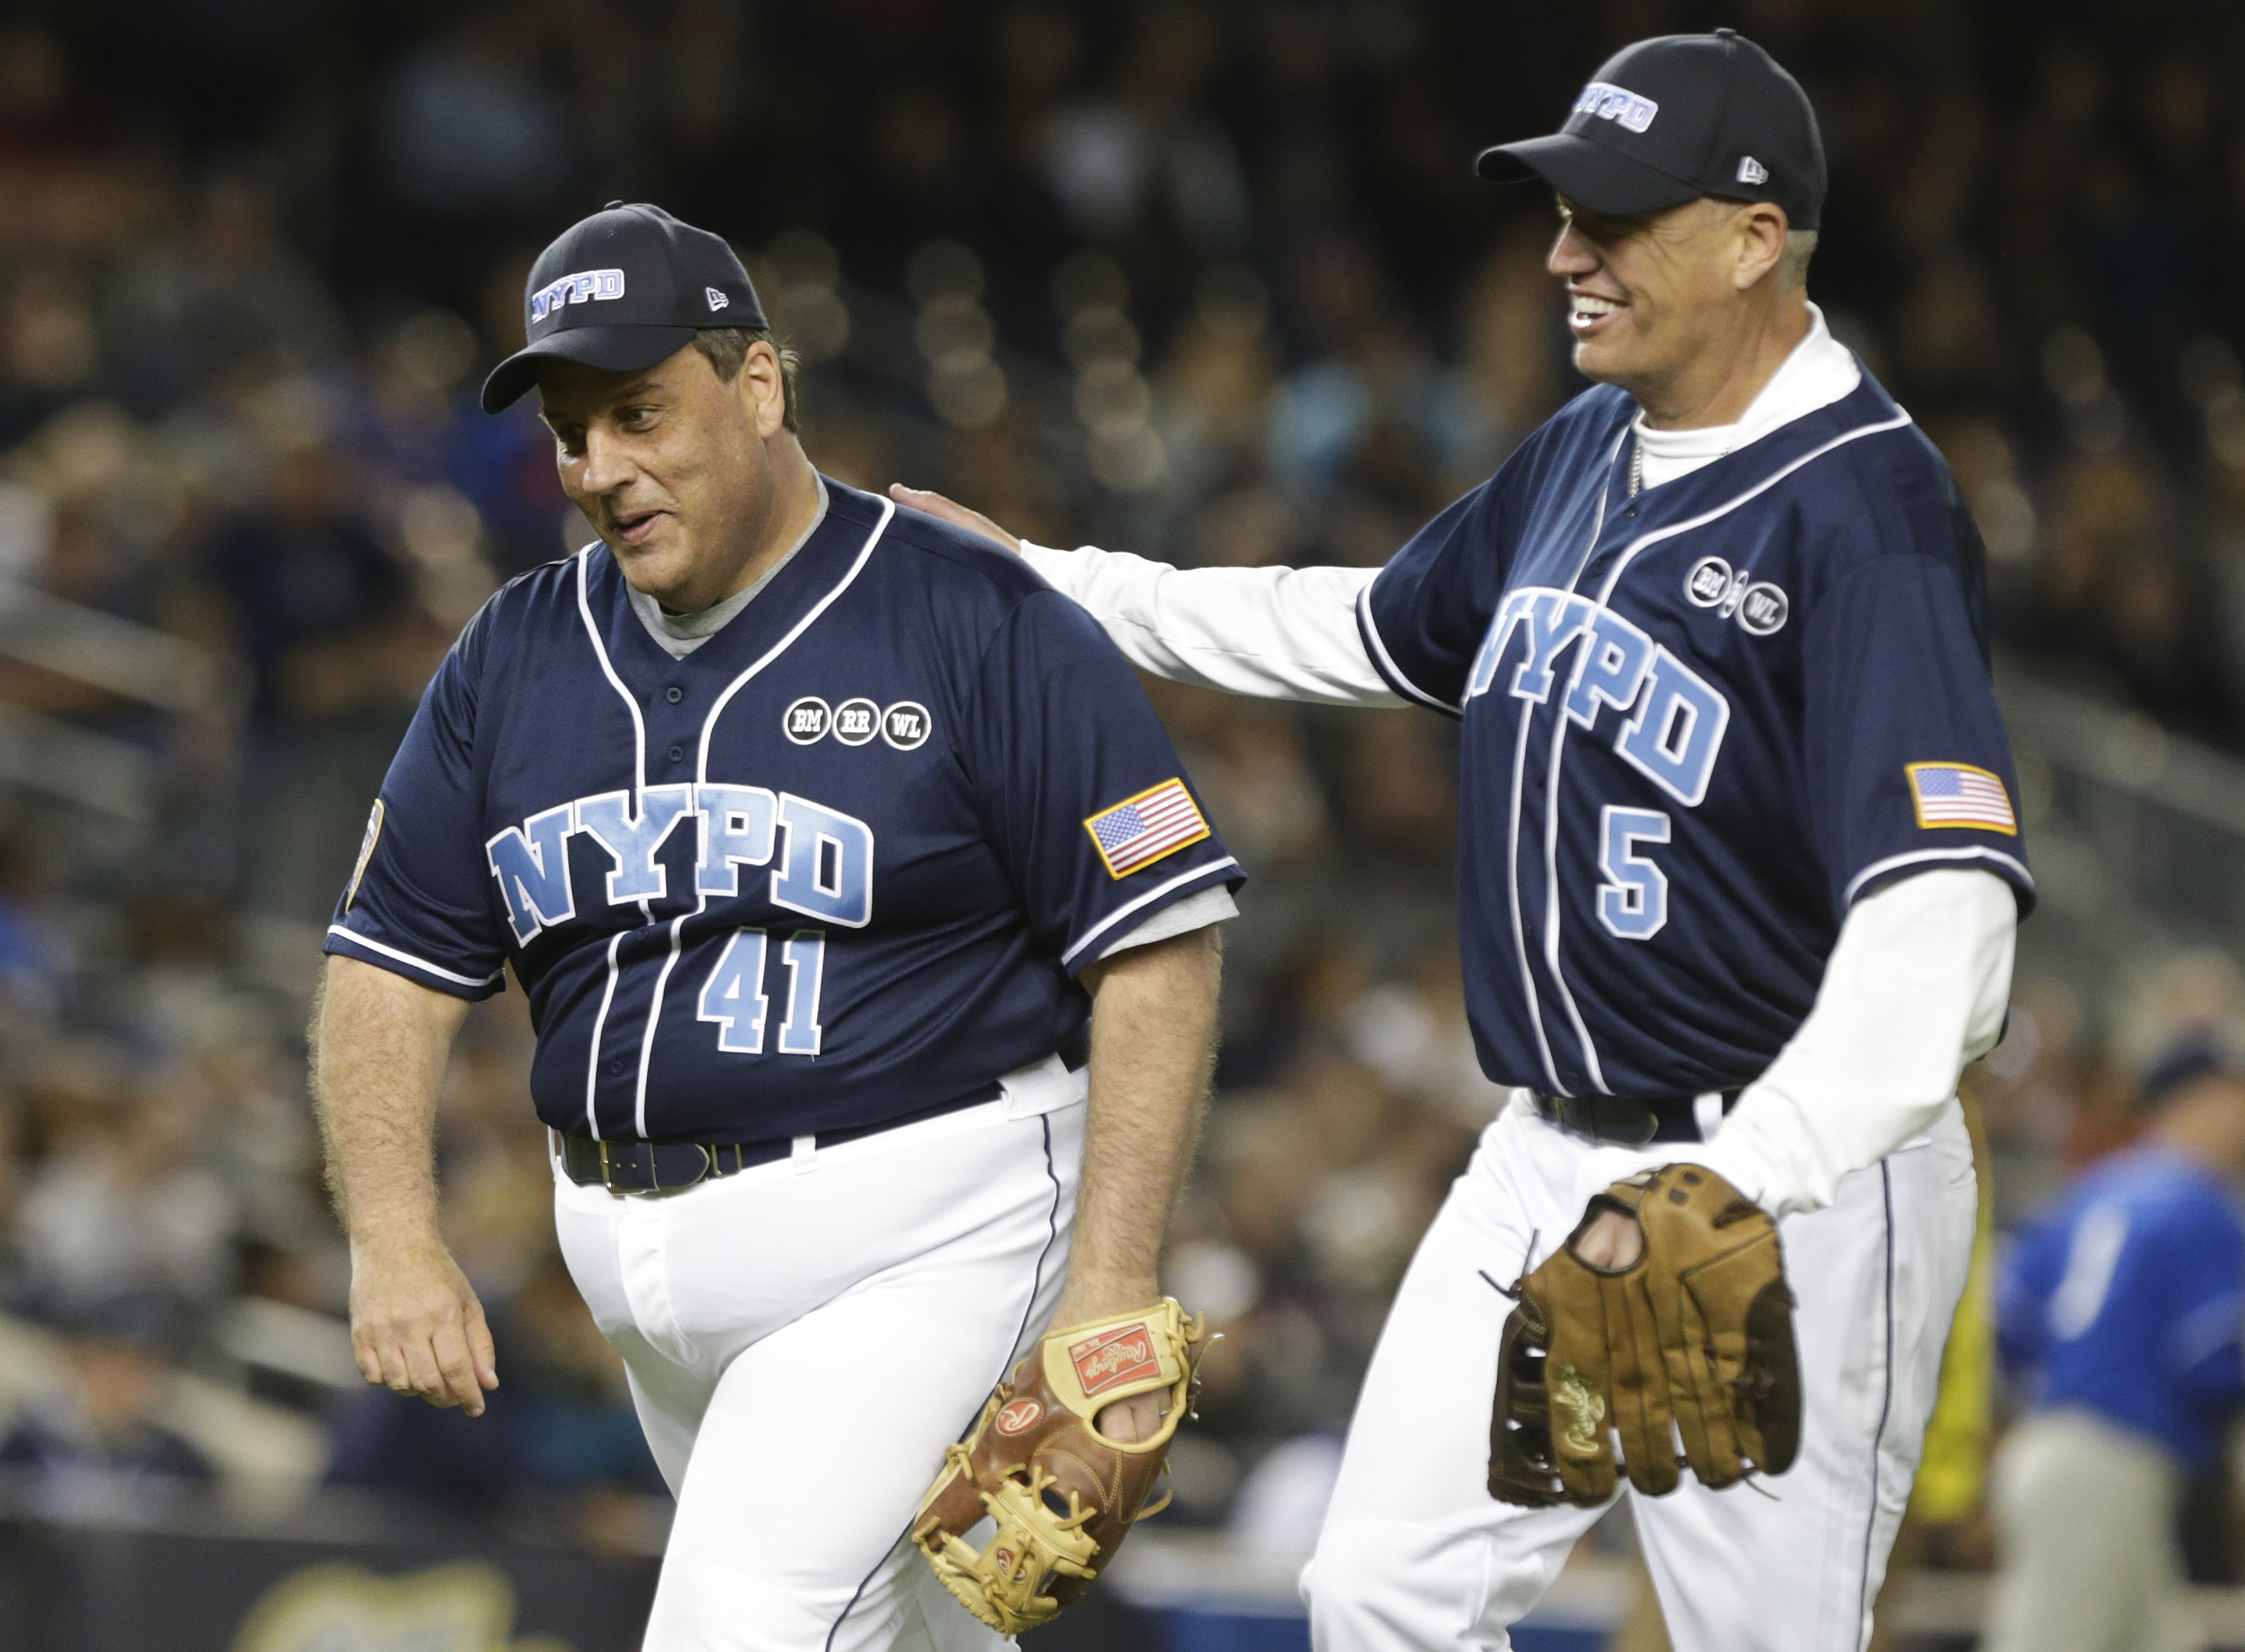 Chris Christie Confronts Heckler at Milwaukee Baseball Game